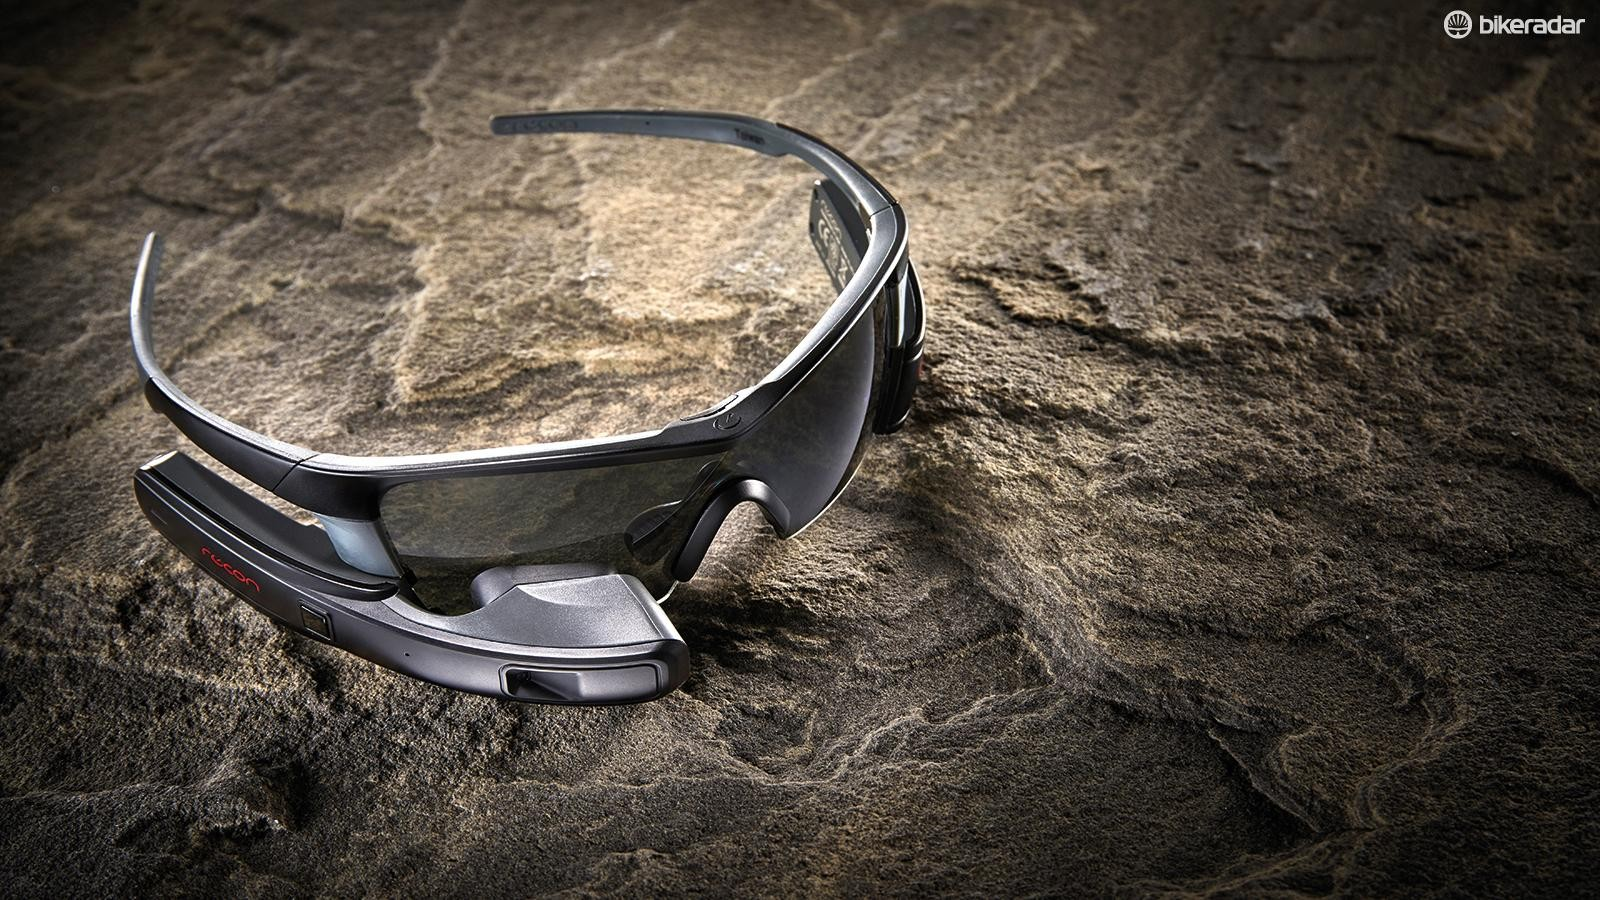 The Recon Jet smart glasses pack a heads-up display and a forward-facing camera